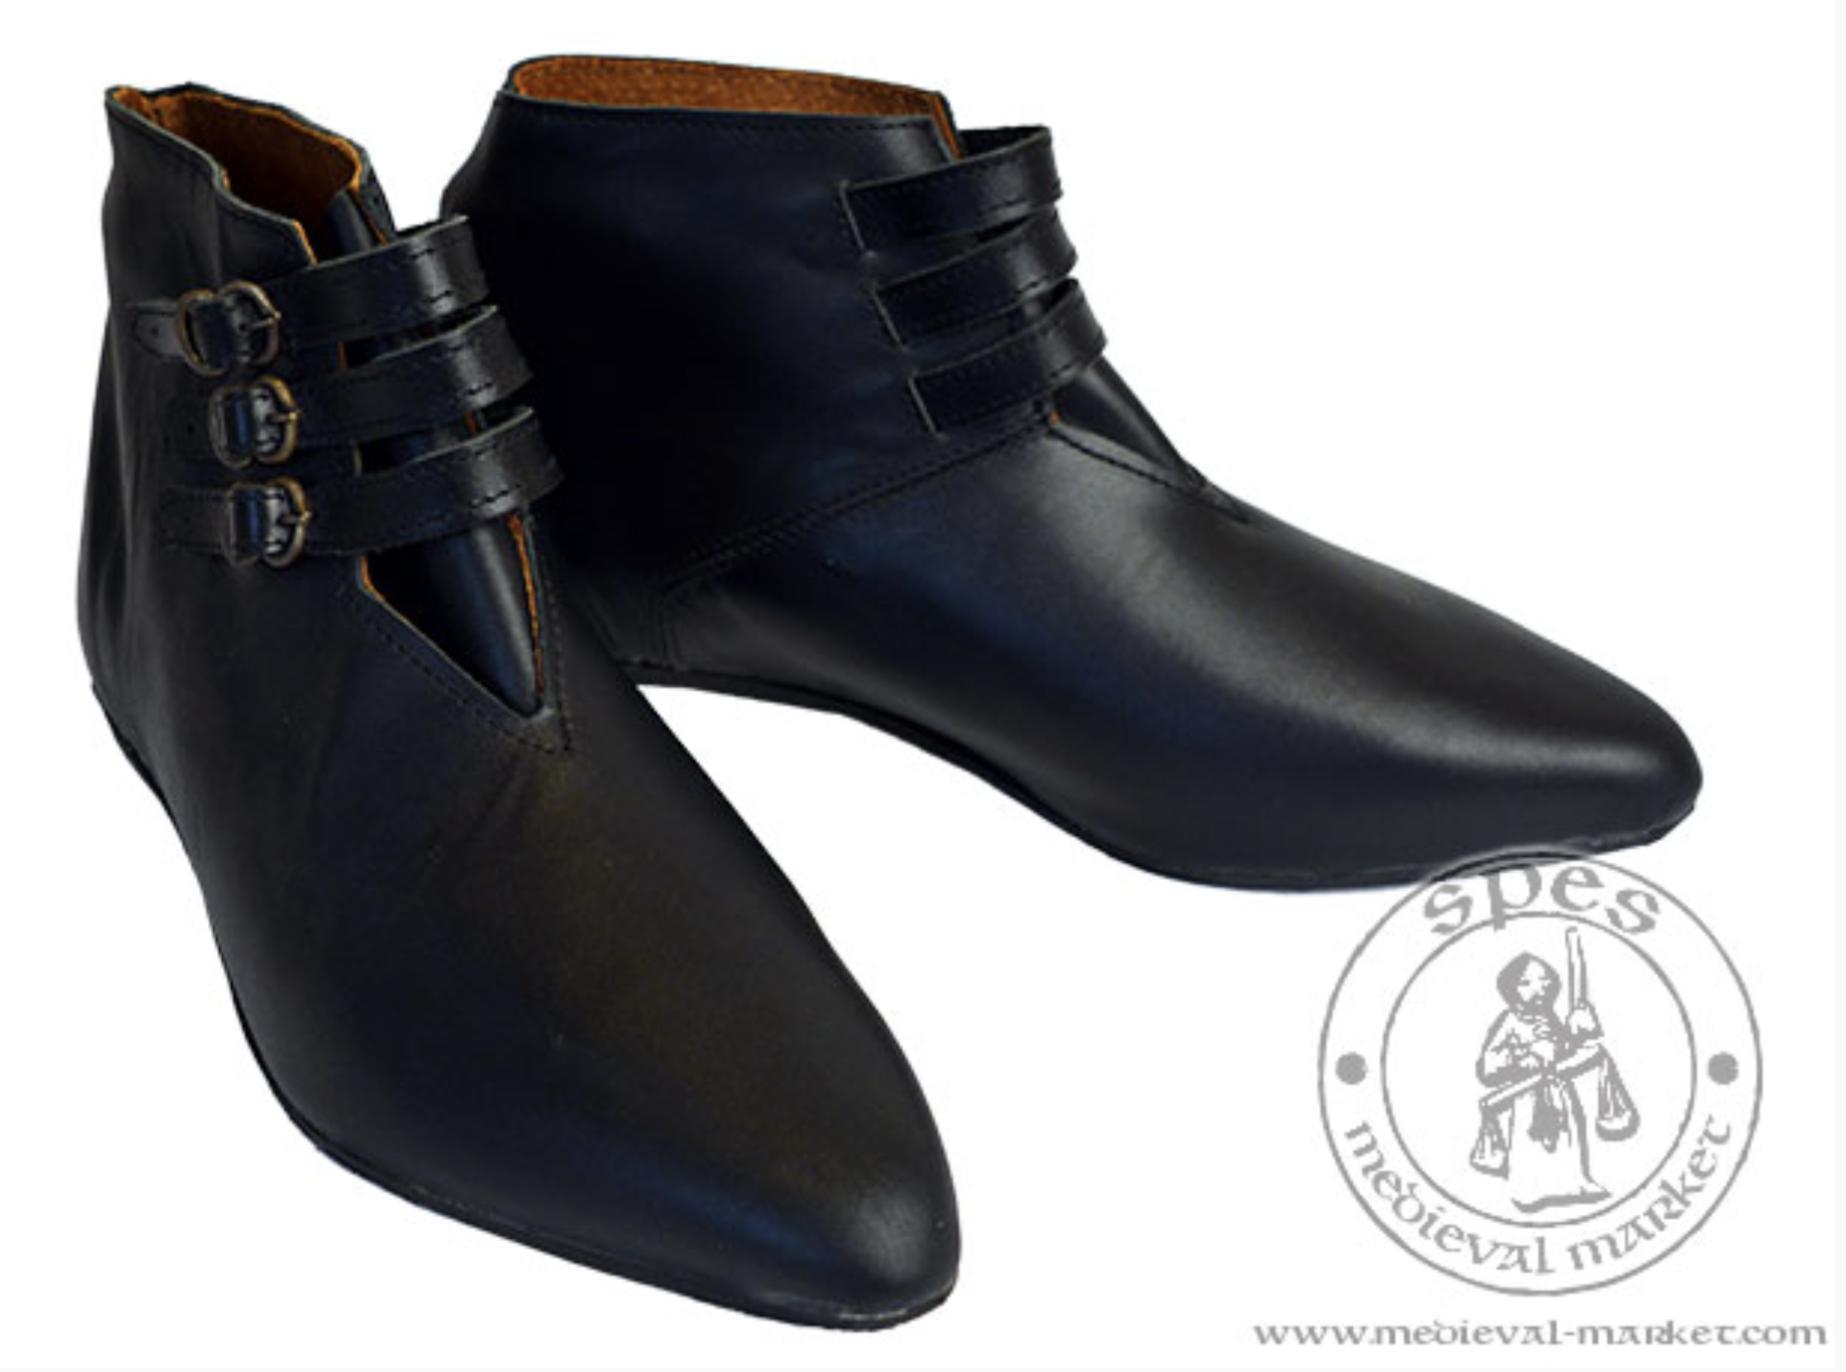 Chaussures Homme : MSE1313 - 145 €